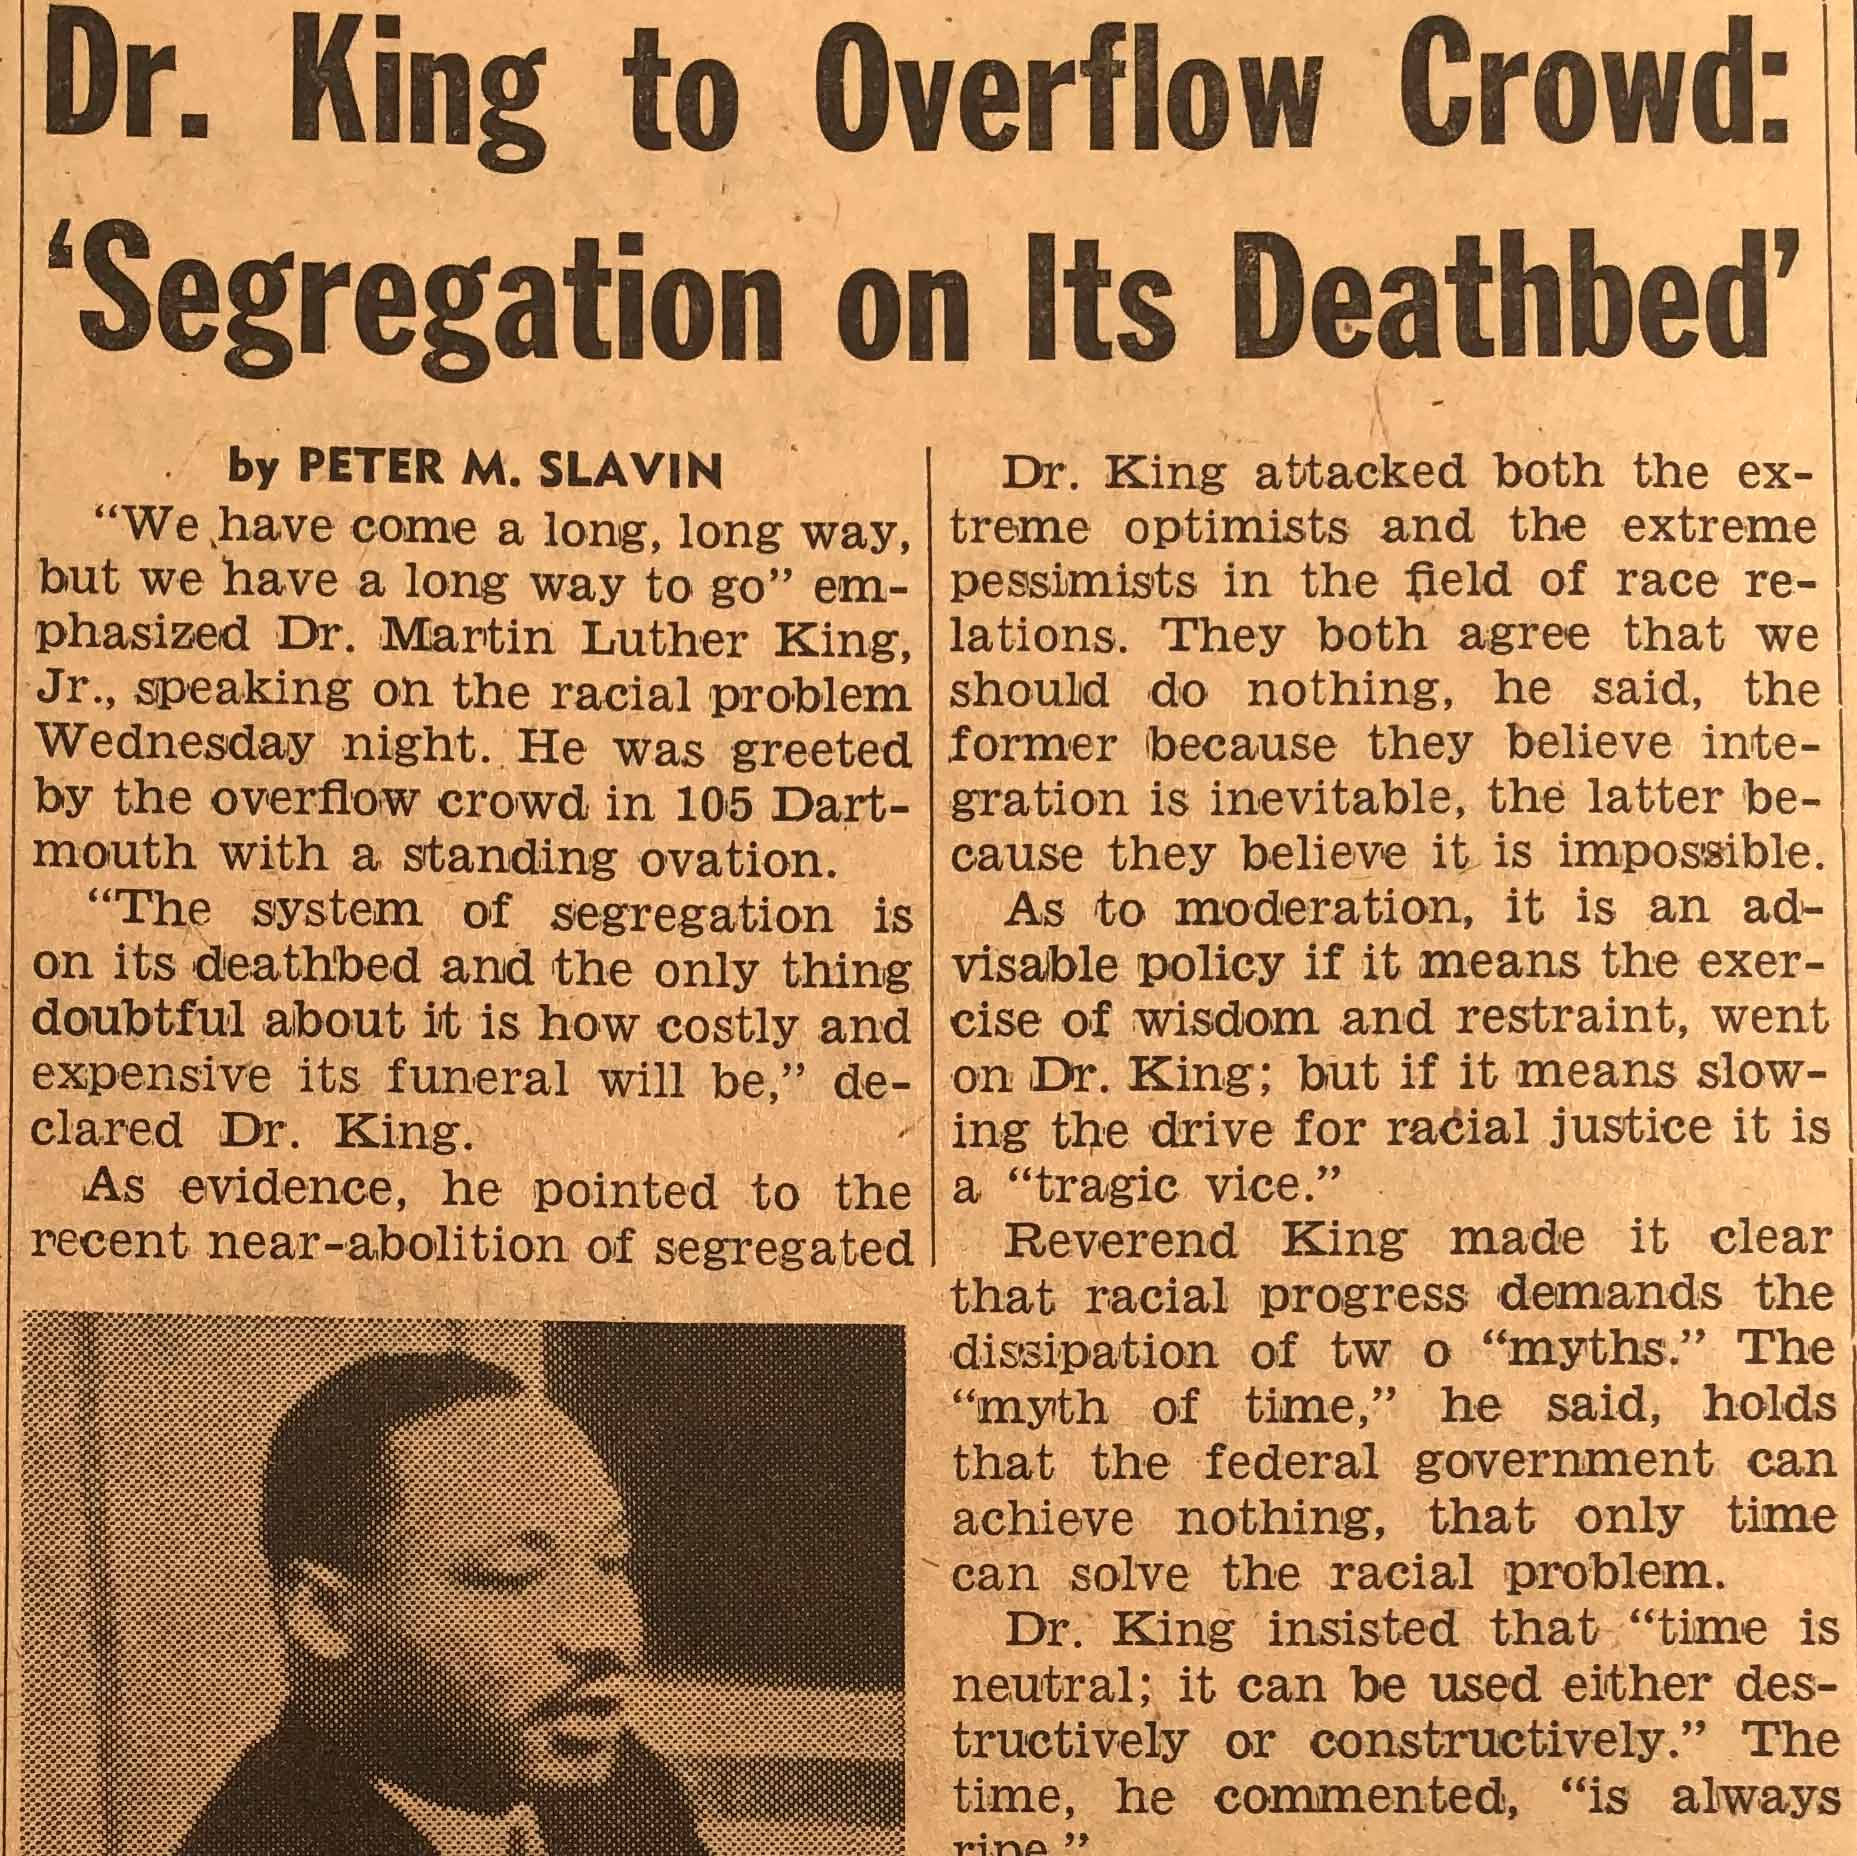 "This article summarizes the main points articulated by Dr. Martin Luther King, Jr. in ""Towards Freedom,"" his Great Issues course lecture. Dr. King stressed the huge disparities in employment and voting rights that still need(ed) to be surmounted by Black Americans despite recent successes in racial equality. He called for wisdom and restraint among Civil Rights activists and underscored the importance of dismantling the myth that only time and education can bring about positive change in racial relations. Lastly, Dr. King urged President John F. Kennedy to issue an executive order declaring all segregation unconstitutional."